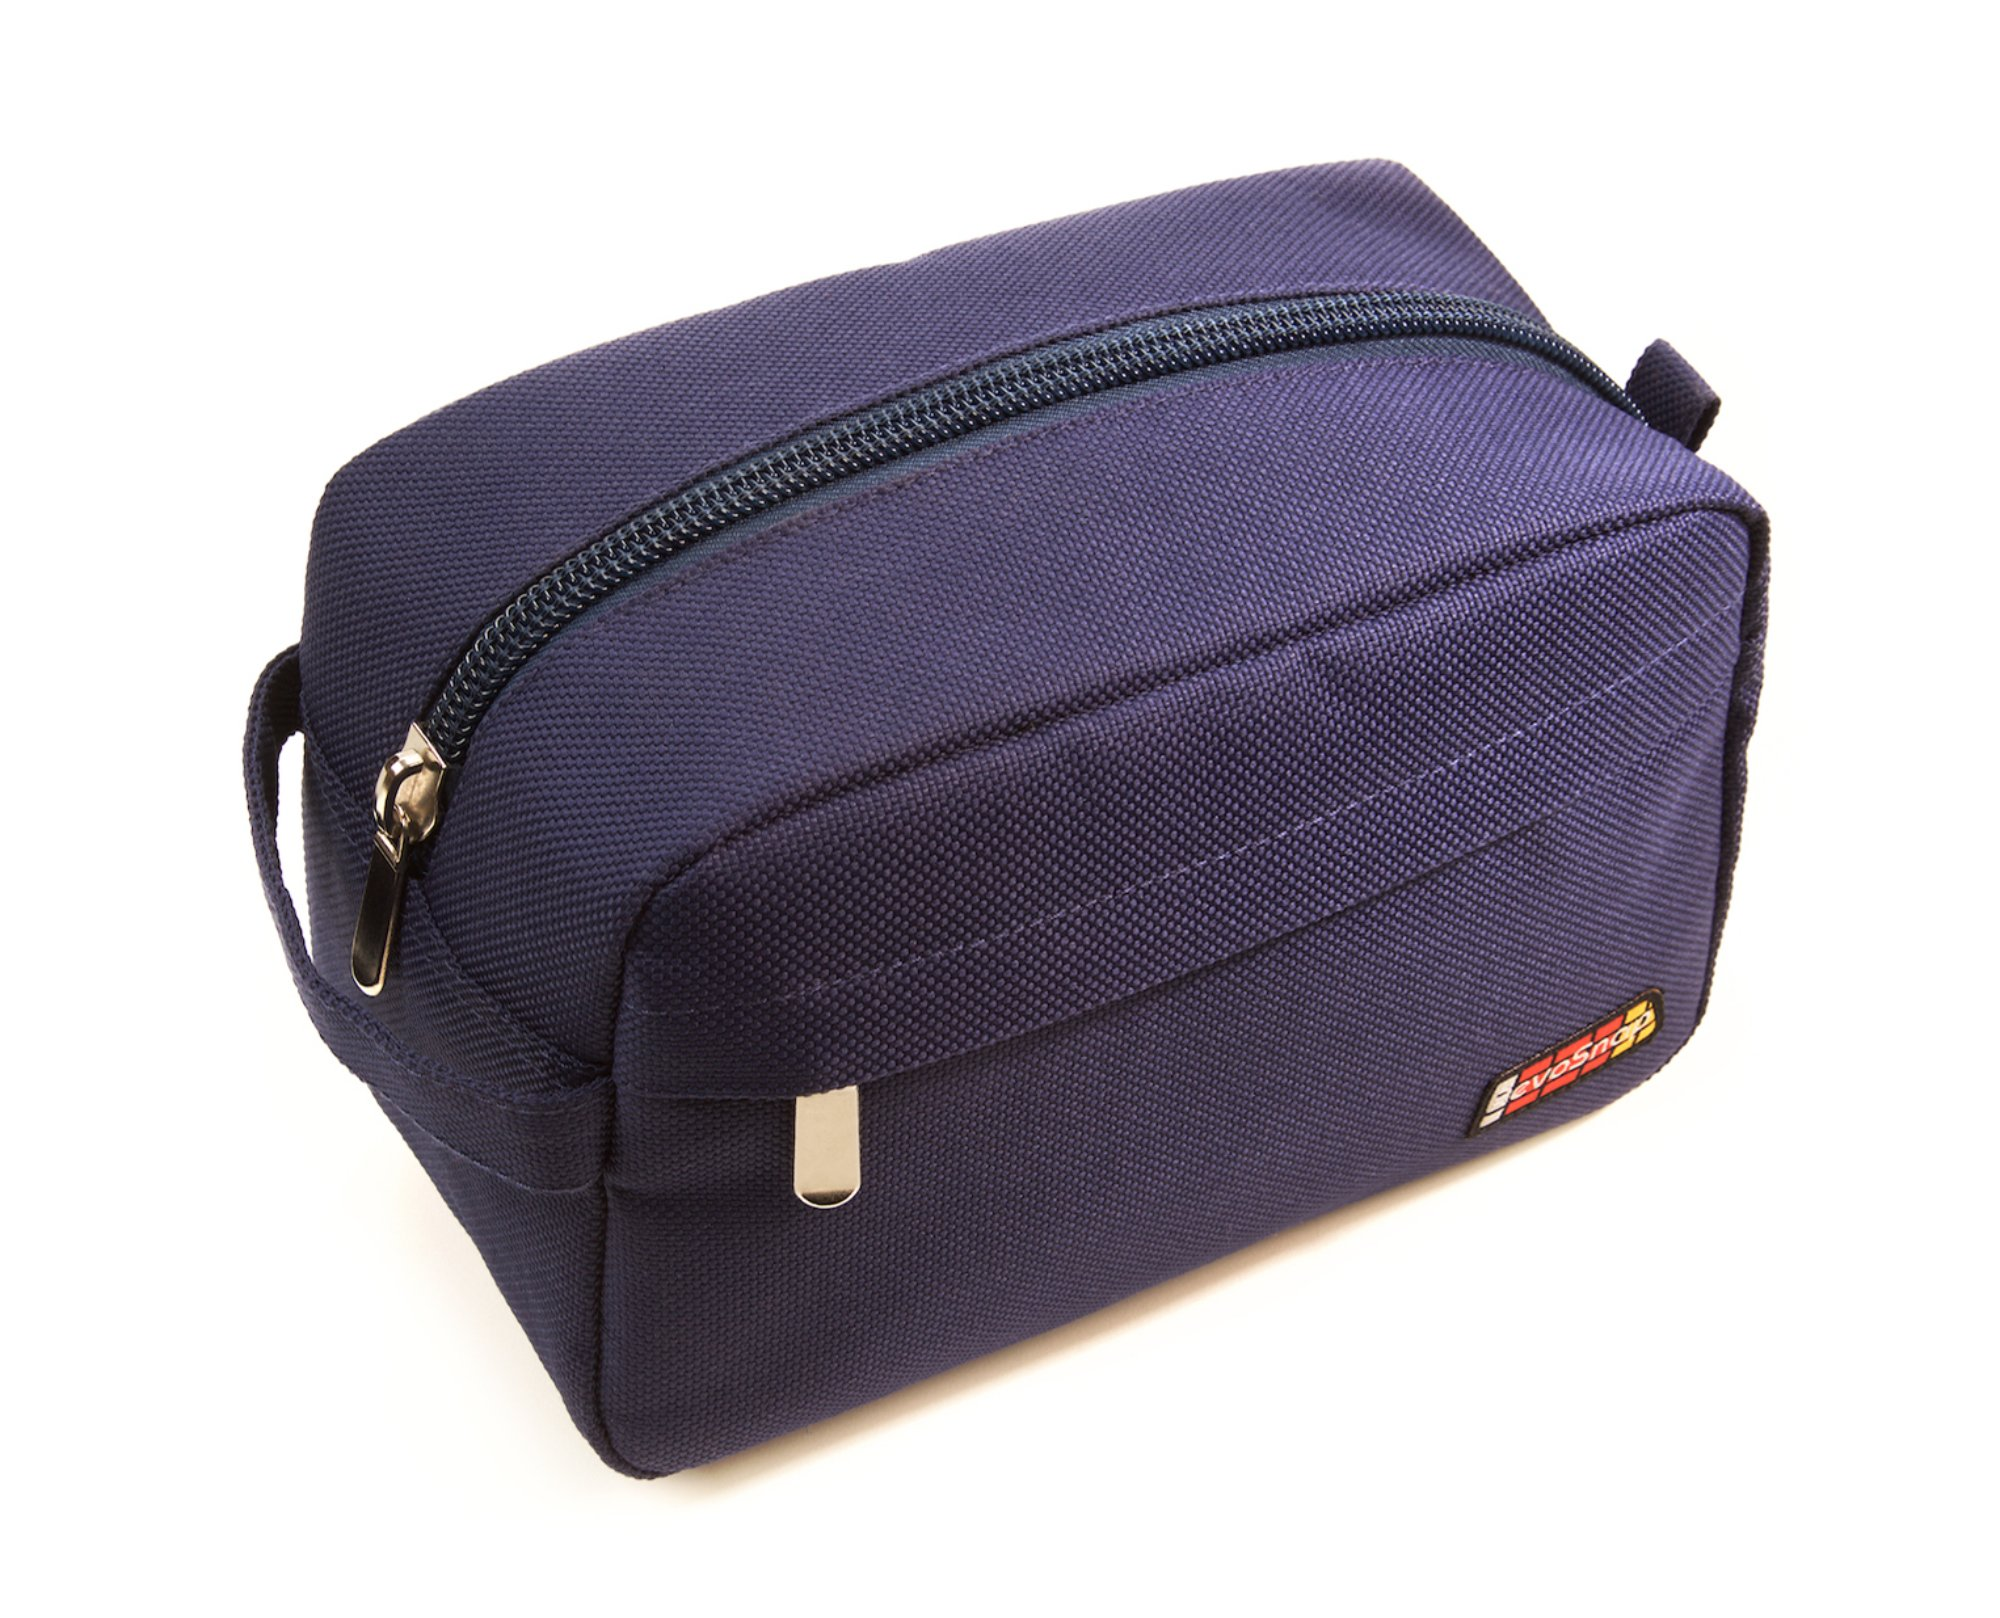 c5a7d0650a Get Quotations · RevoSnap Time Traveler Toiletry Bag